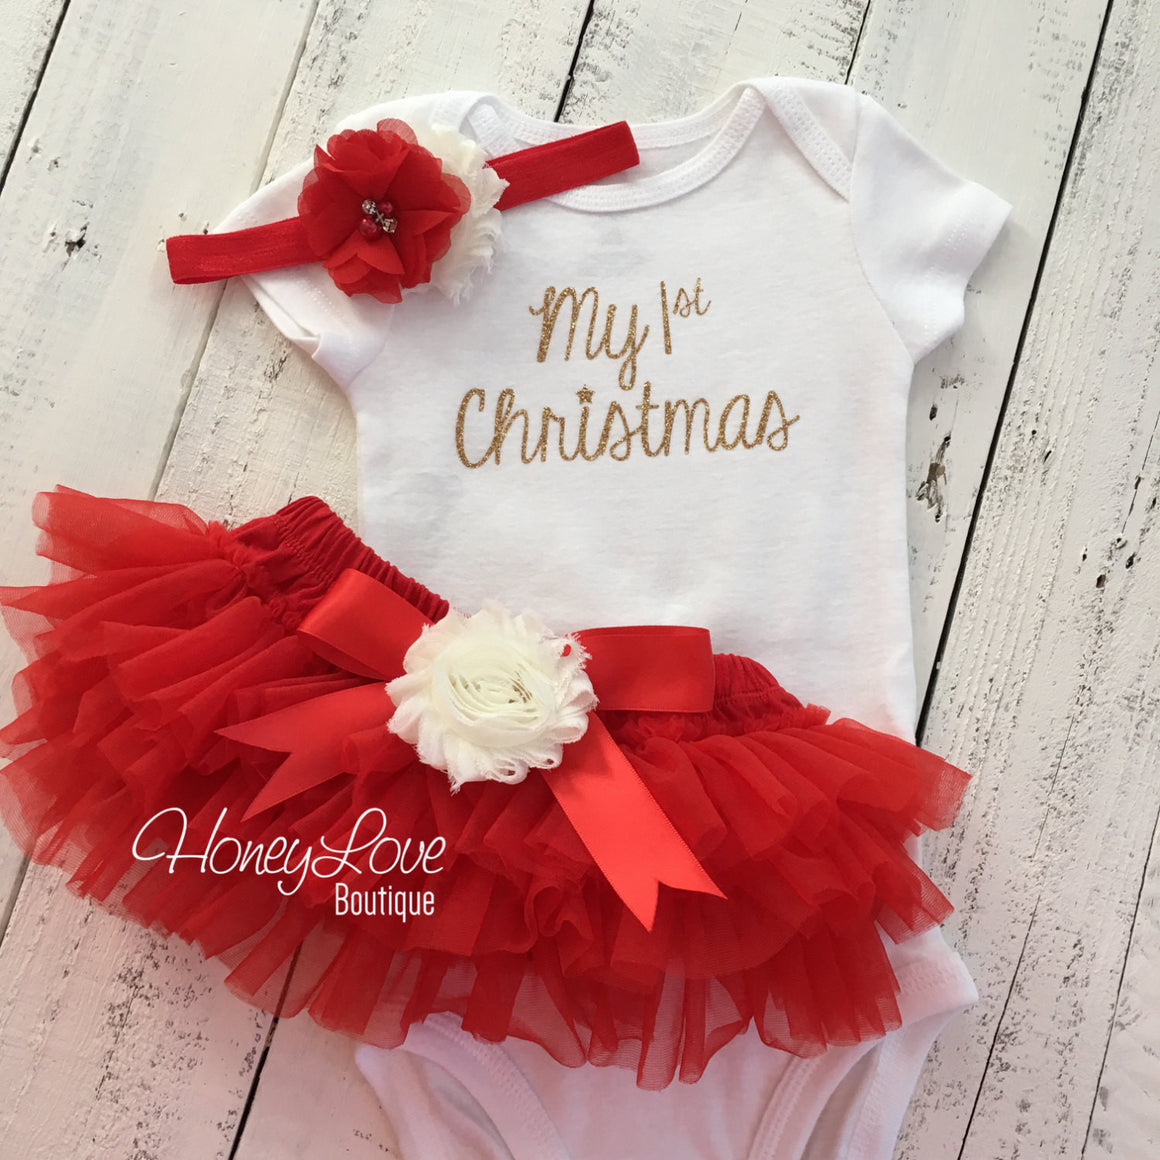 My 1st Christmas Outfit -  Gold/Silver -  Red and Ivory - Embellished tutu skirt bloomers - HoneyLoveBoutique